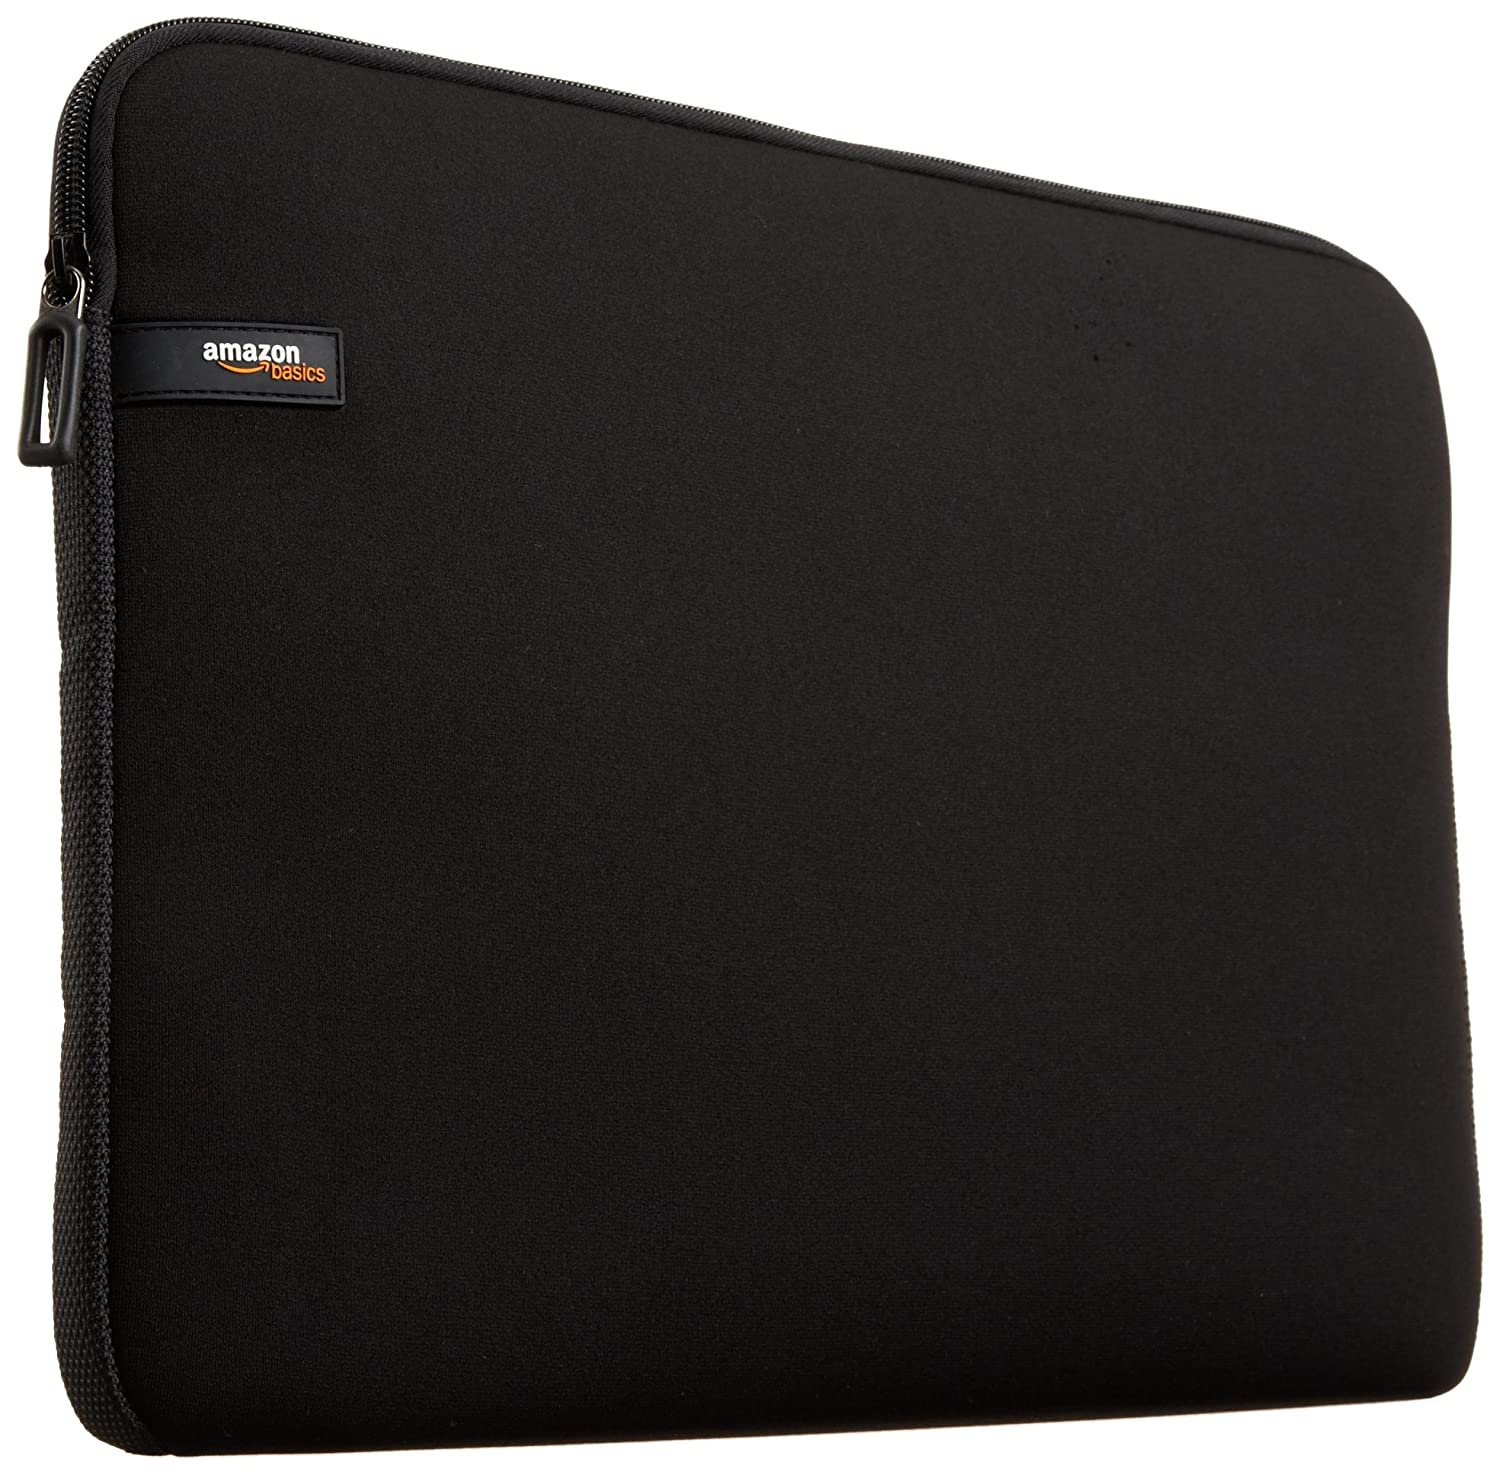 AmazonBasics - Sleeve per Laptop / MacBook Air / MacBook Pro / MacBook Pro con display Retina, 13,3 pollici, colore: Nero